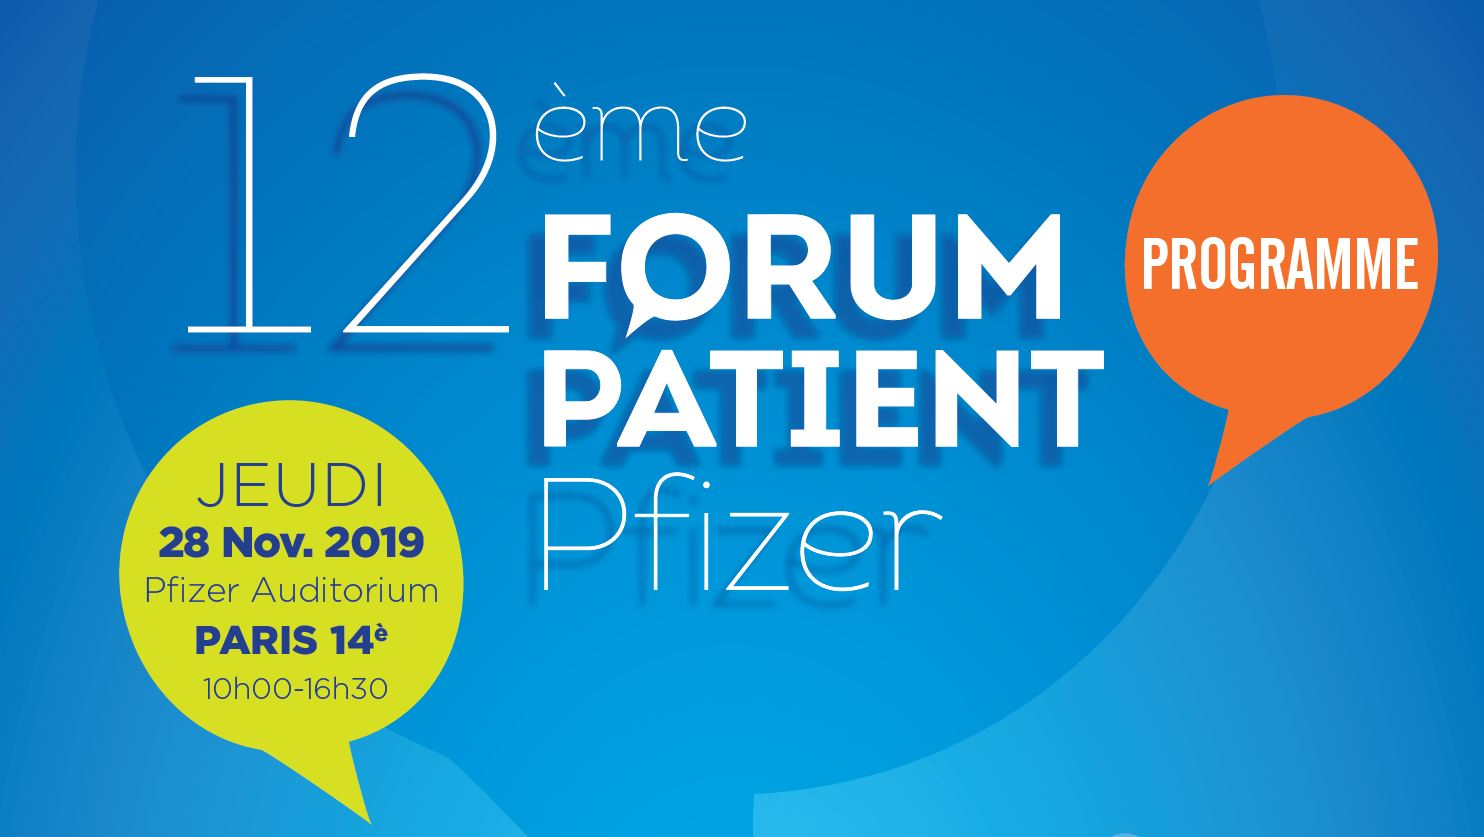 12ème Forum Patient Pfizer